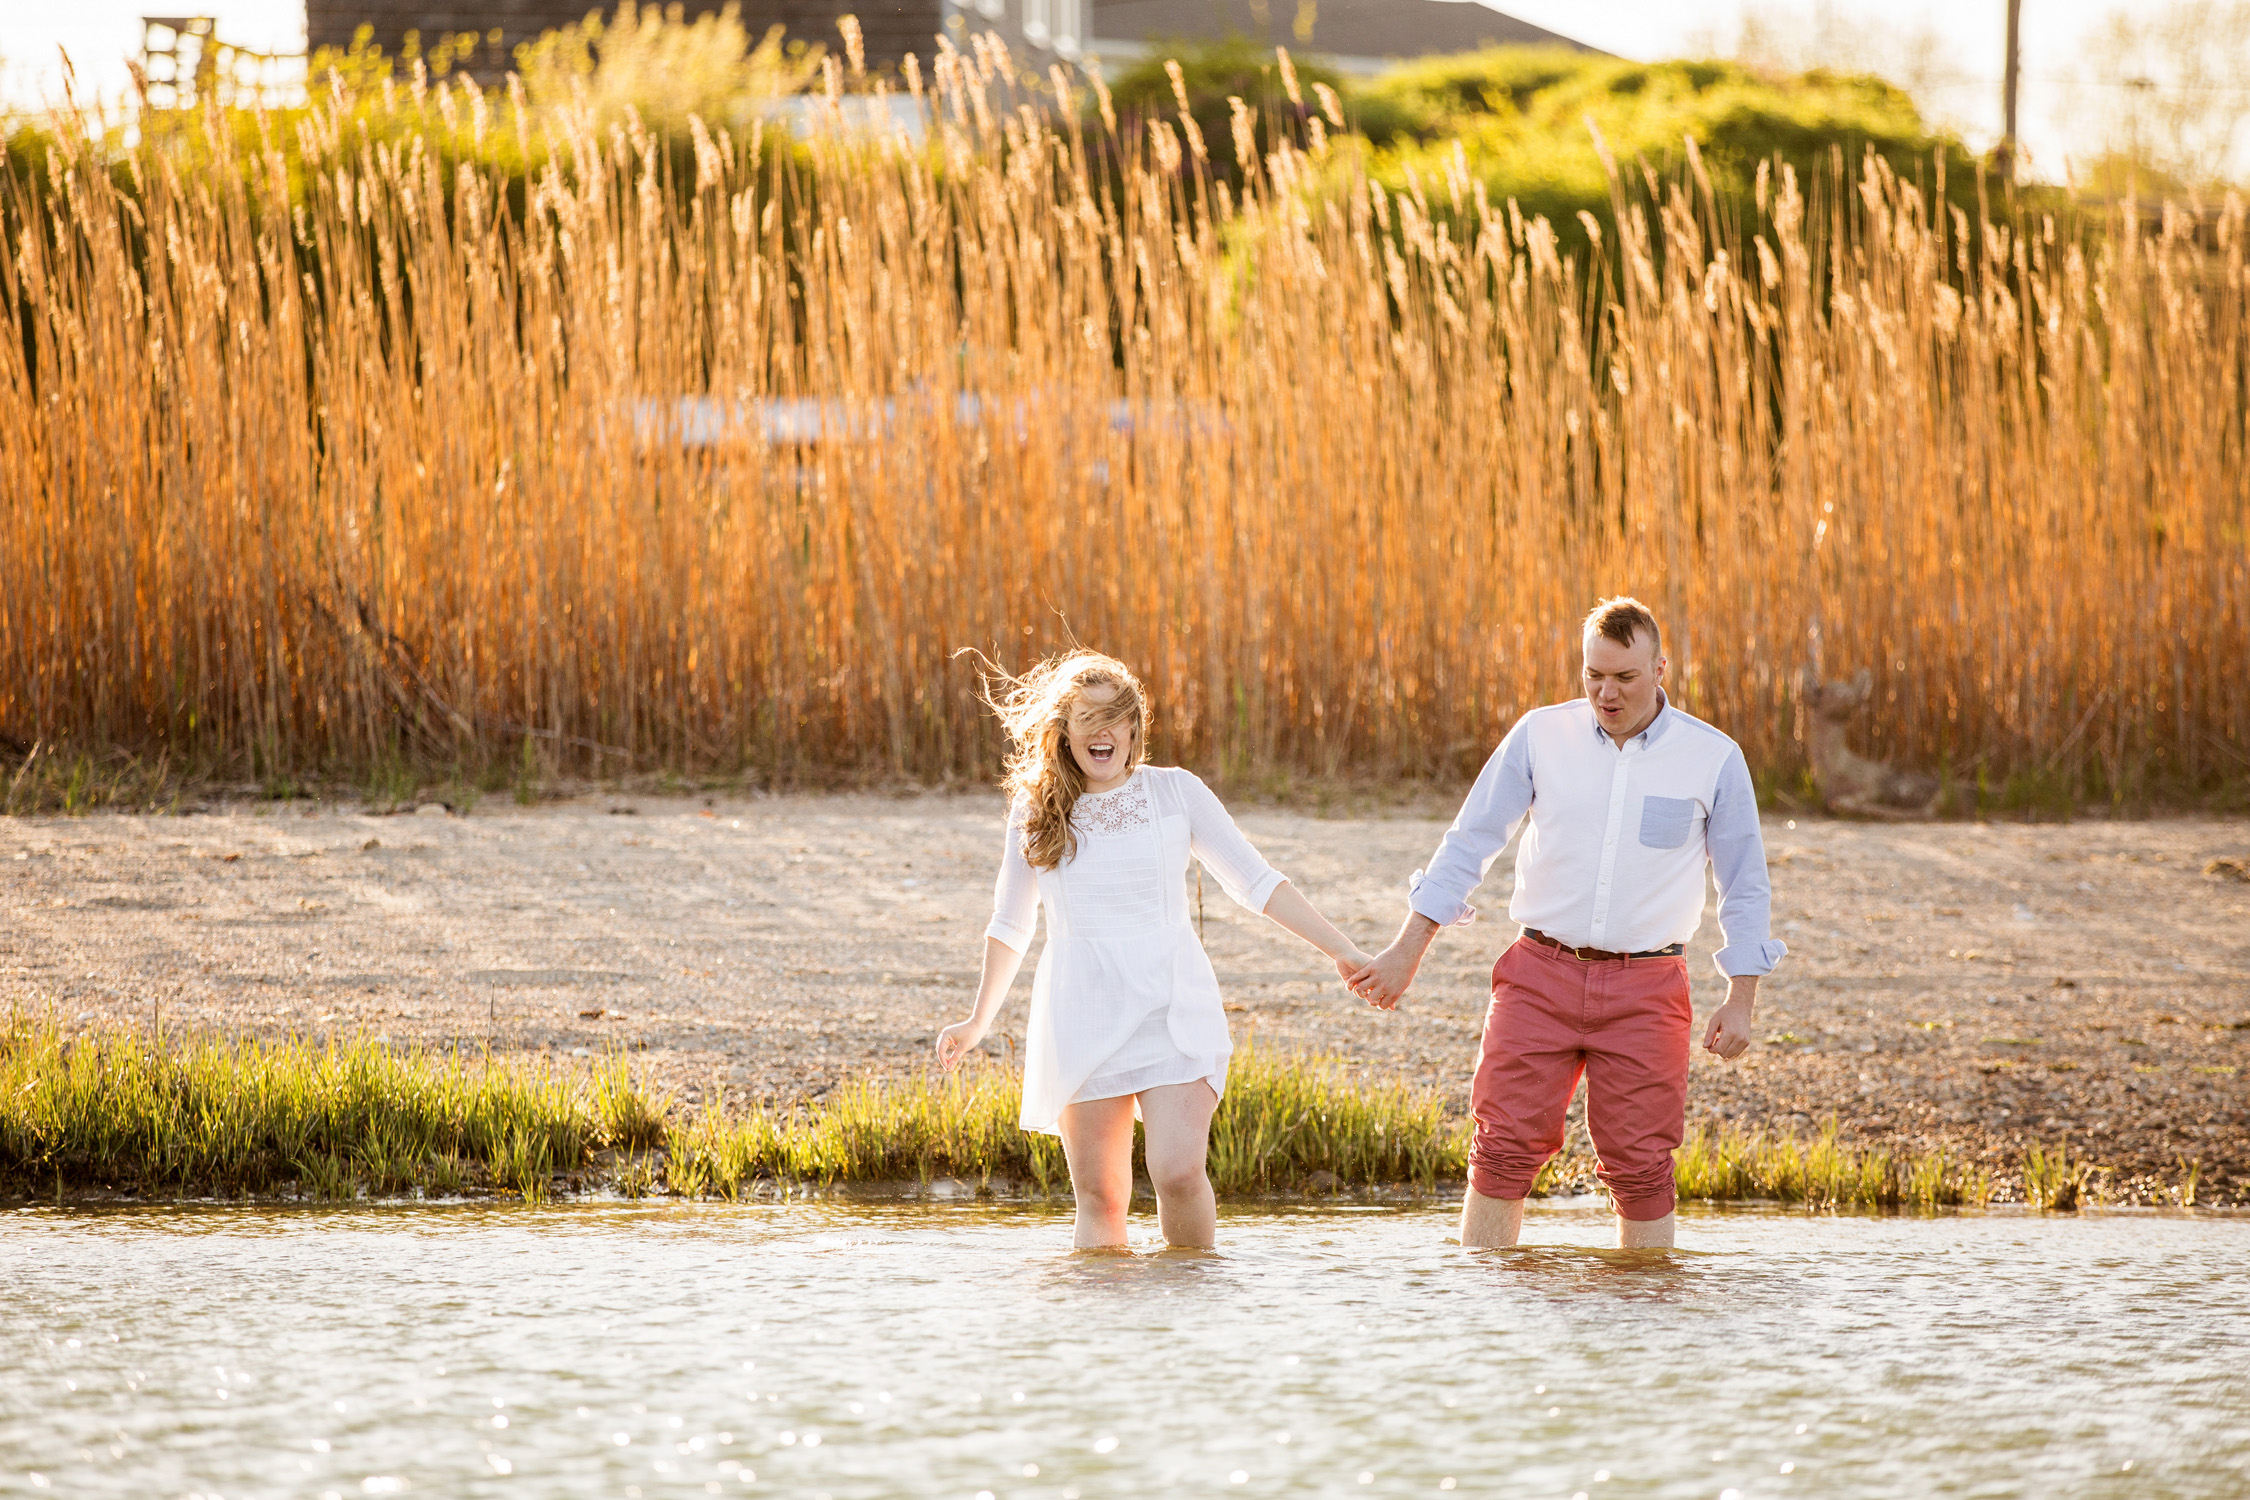 Tracey Buyce Engagement Photography43.jpg